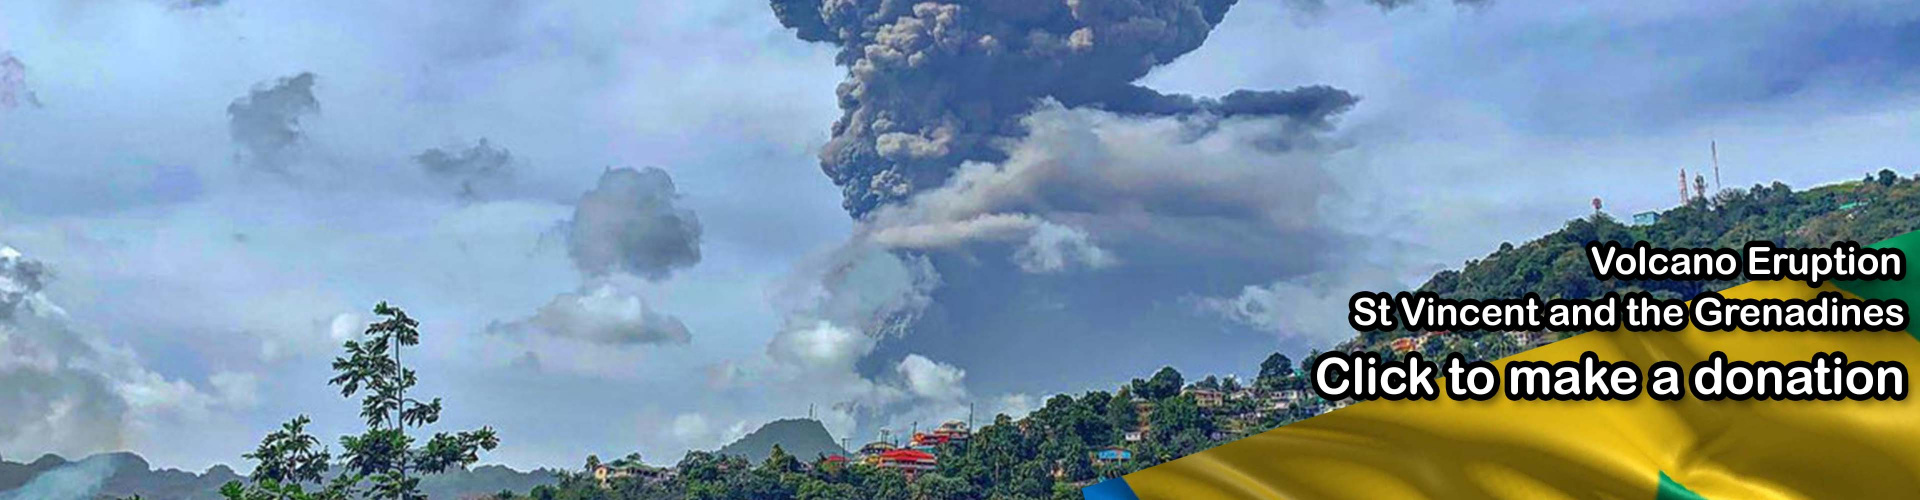 ST Vincent volcano please donate